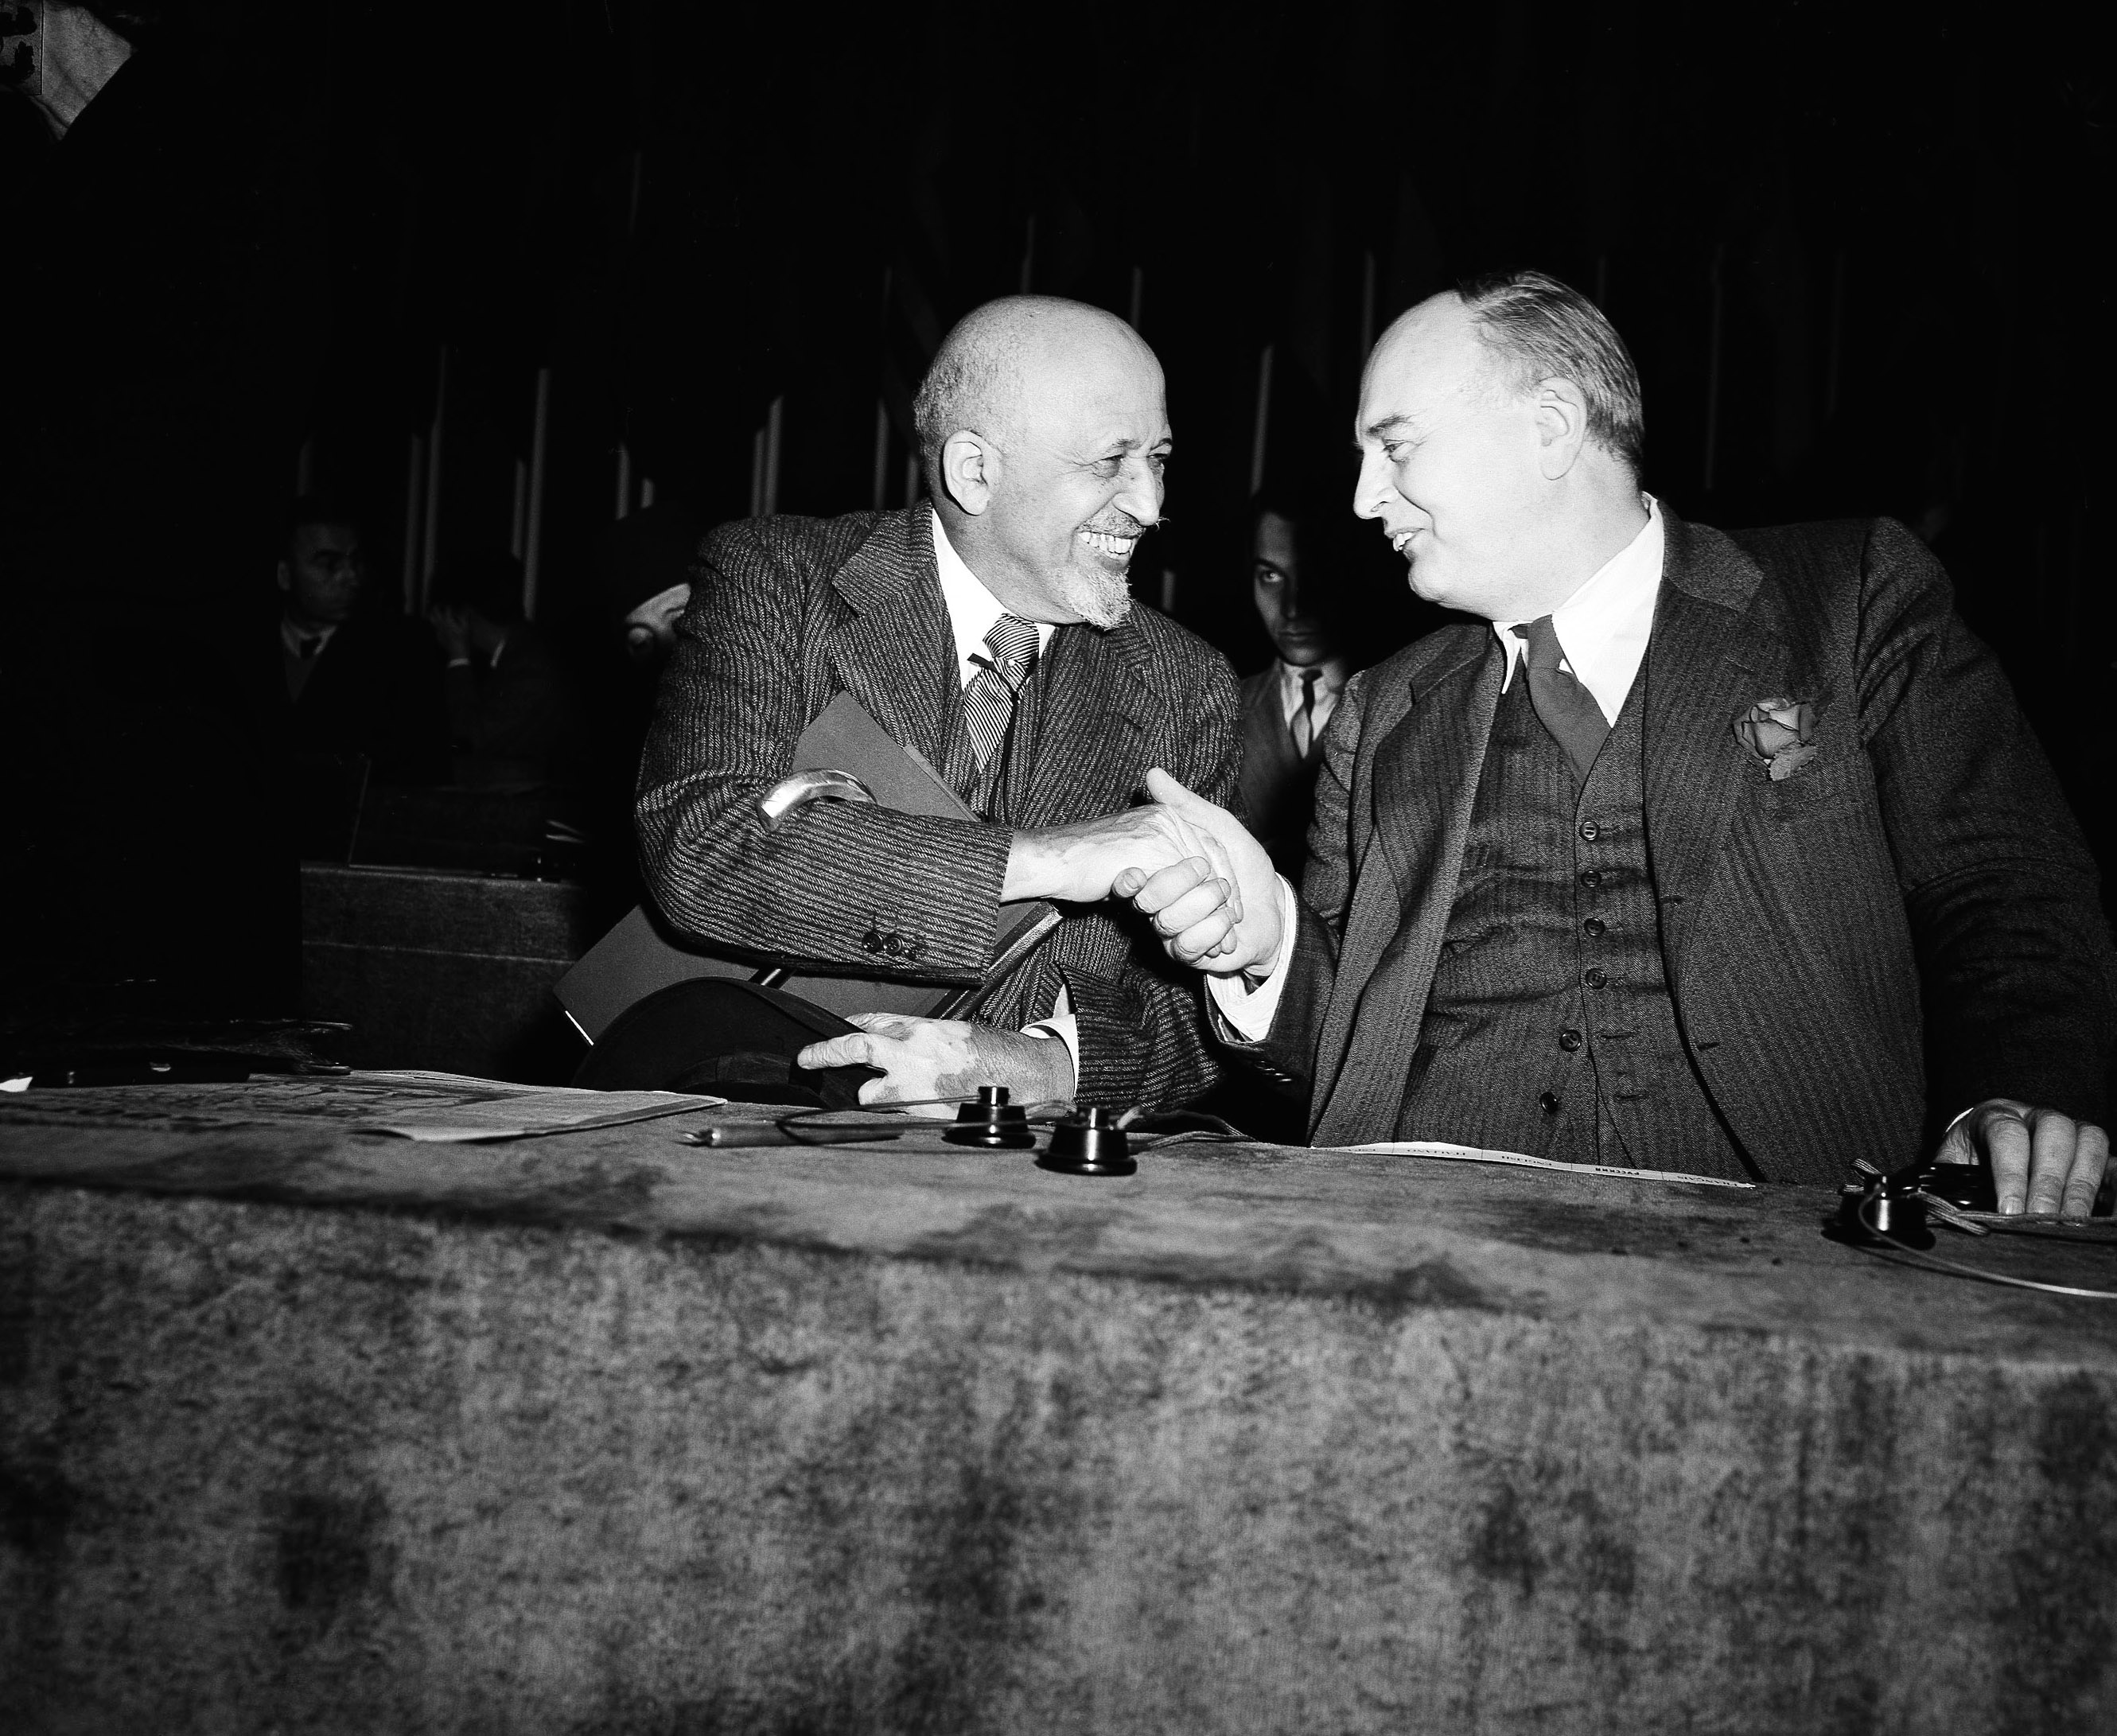 British Labour Party politician Konni Zilliacus, right, greeted W.E.B. DuBois at the World Peace Conference at the Salle Pleyel in Paris on April 21, 1949. (Jean Jacques Levy/AP)